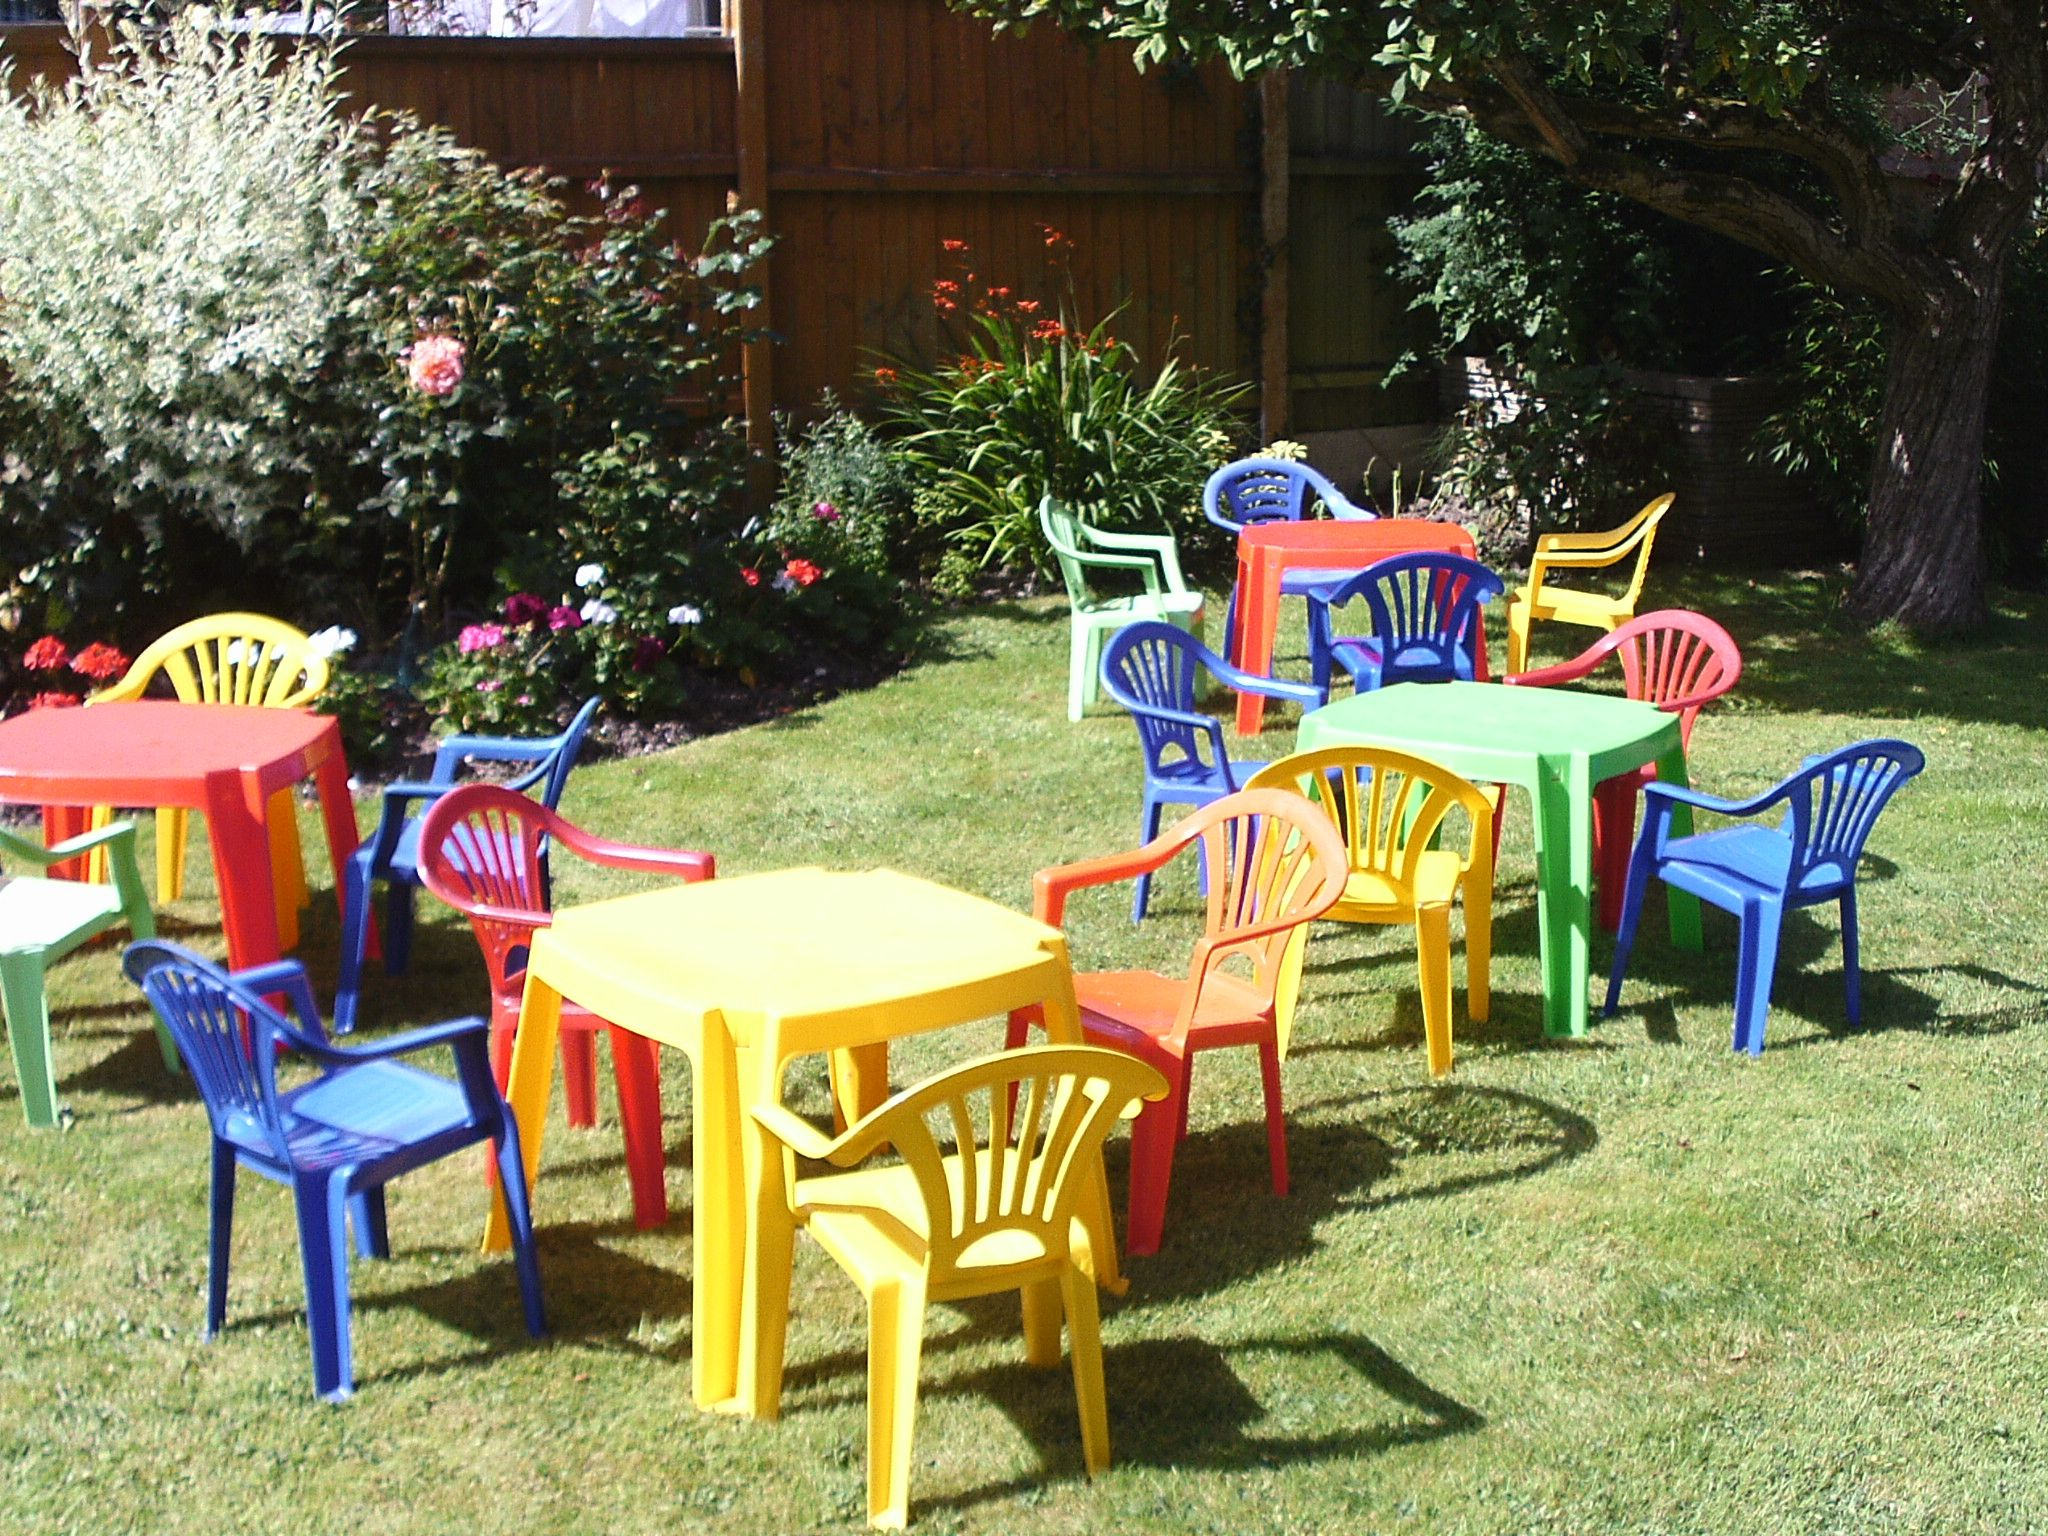 Childrens tables and chairs available for hire ideal for toddlers parties in the age range 2 4 years price per set of table and four chairs is £8